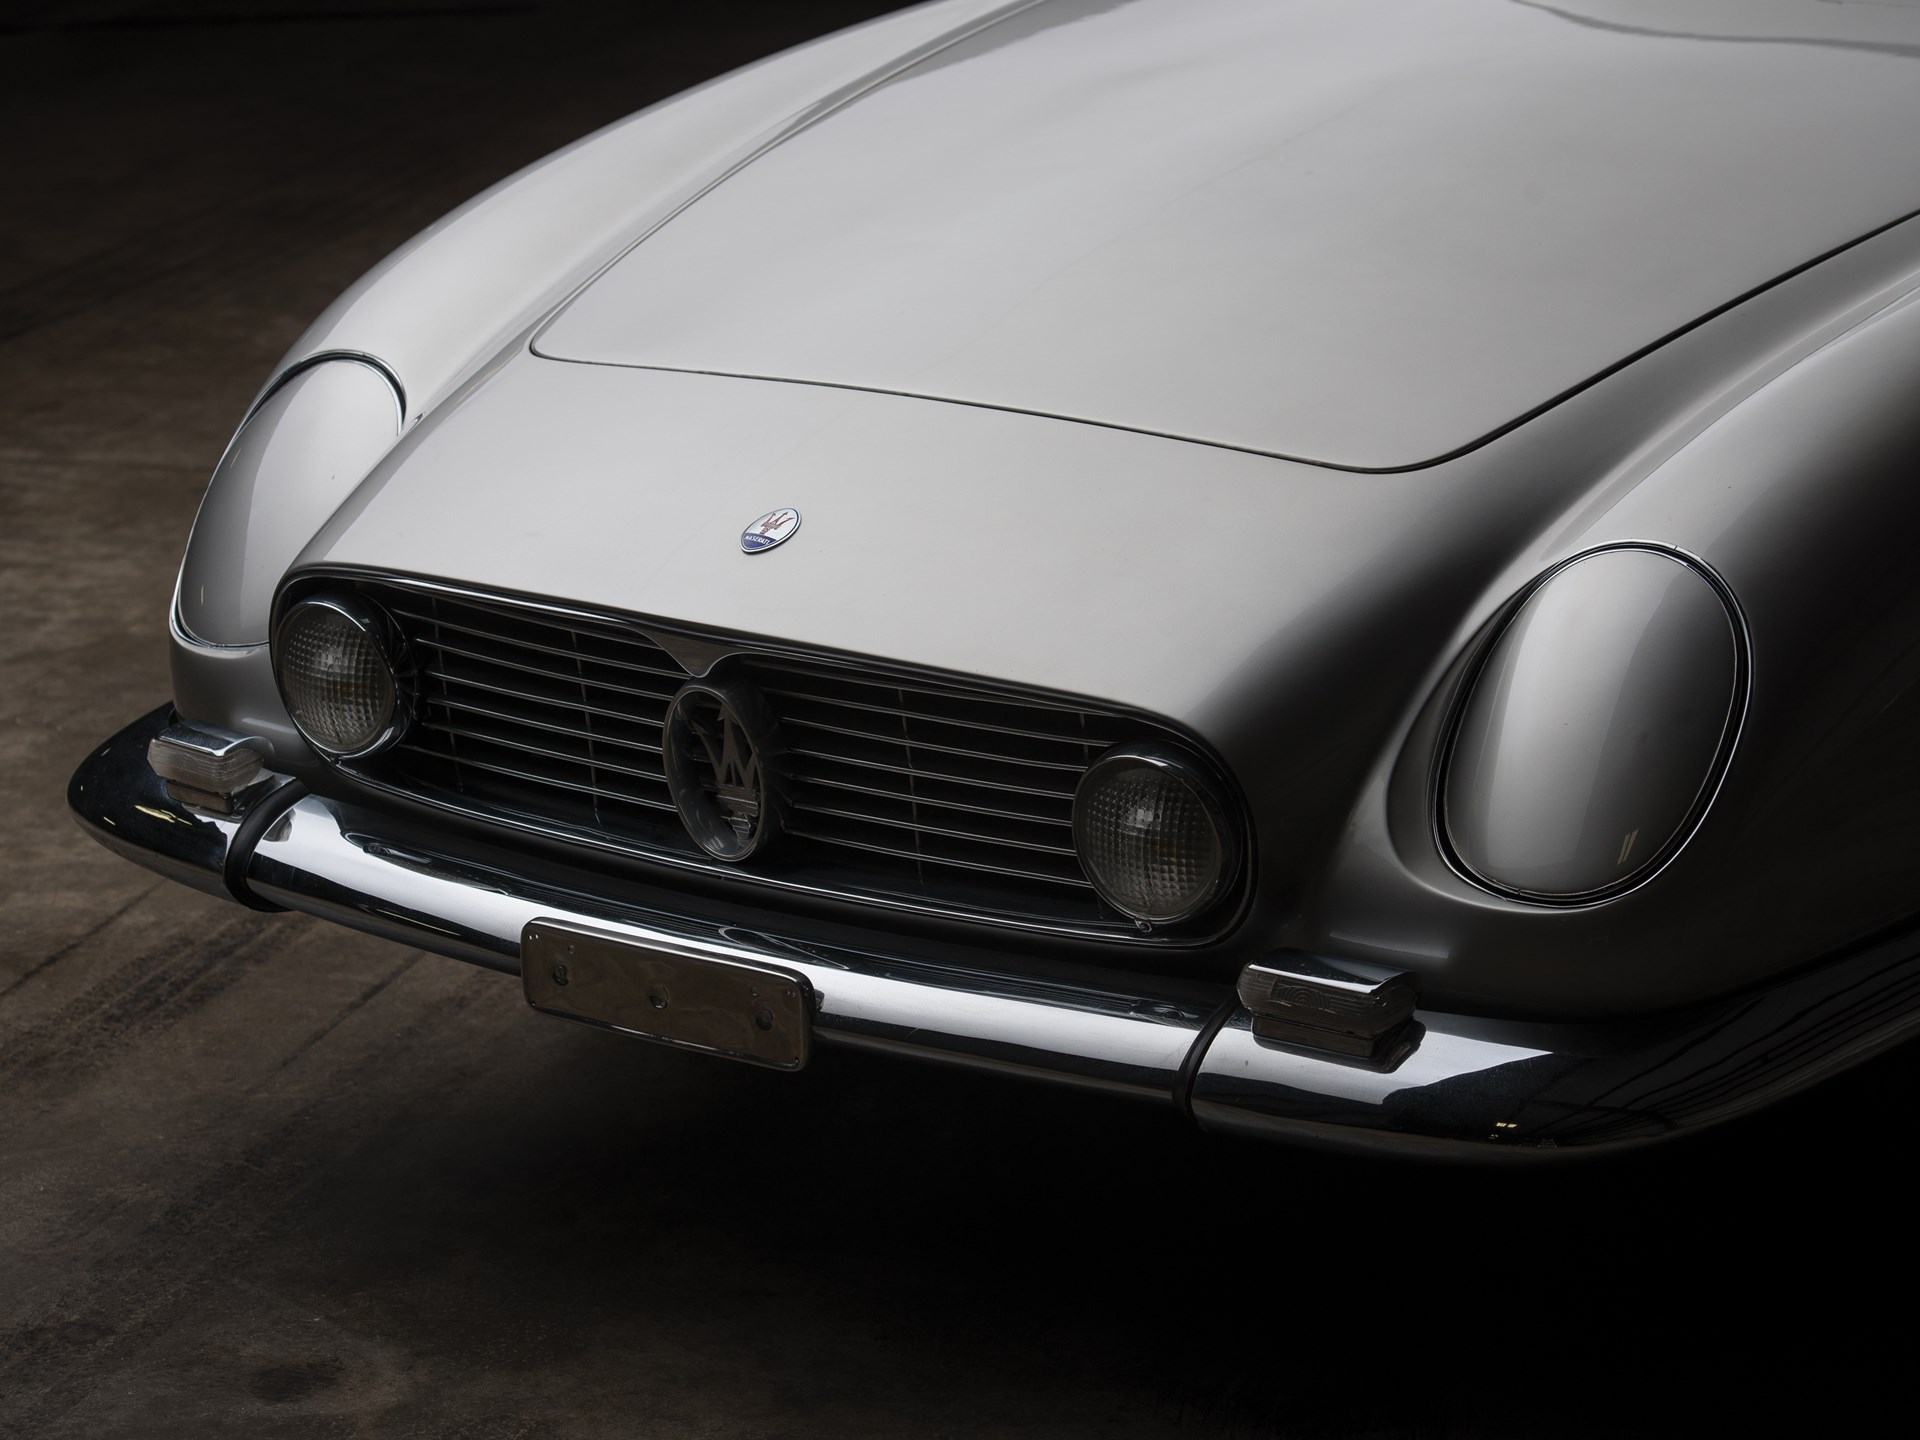 1964 Maserati 5000 GT Coupe by Michelotti